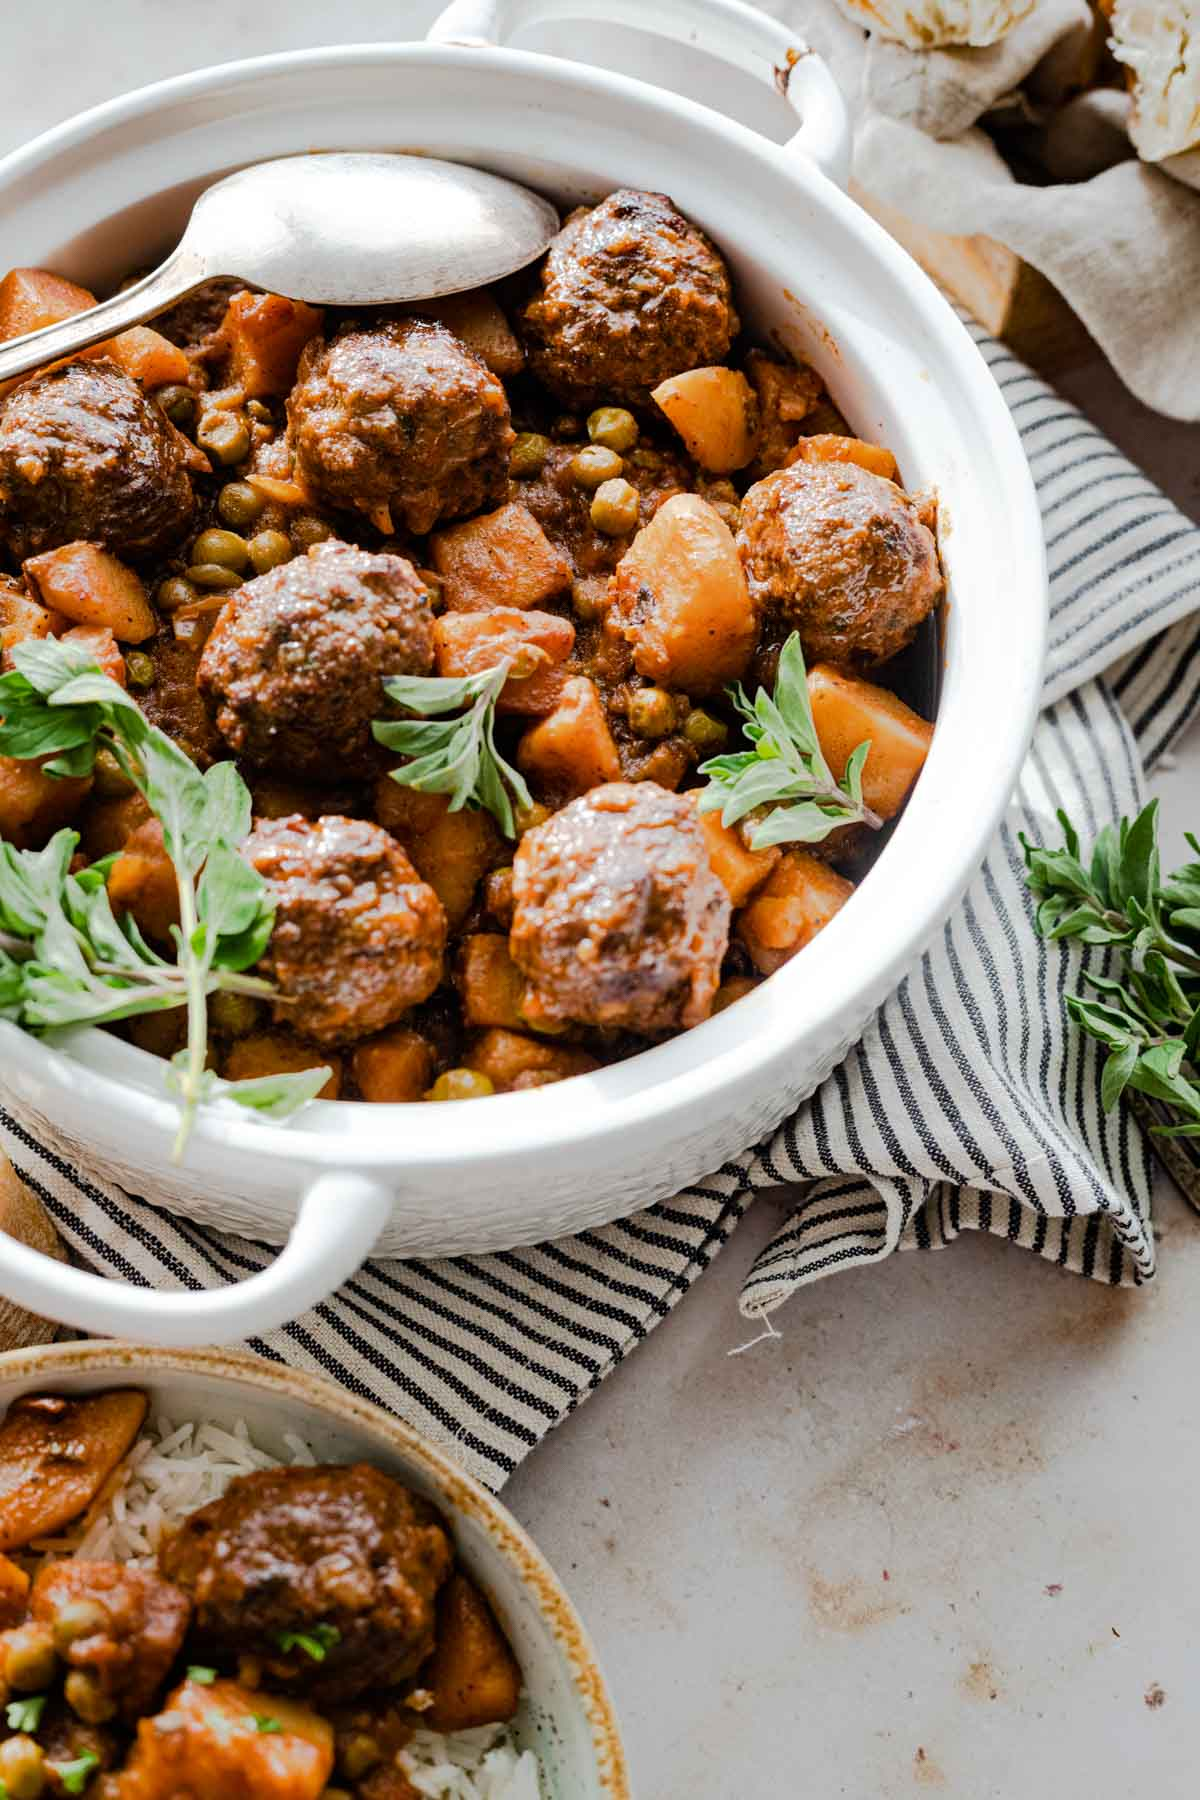 dawood basha Meatball stew with peas and potato served in a pot